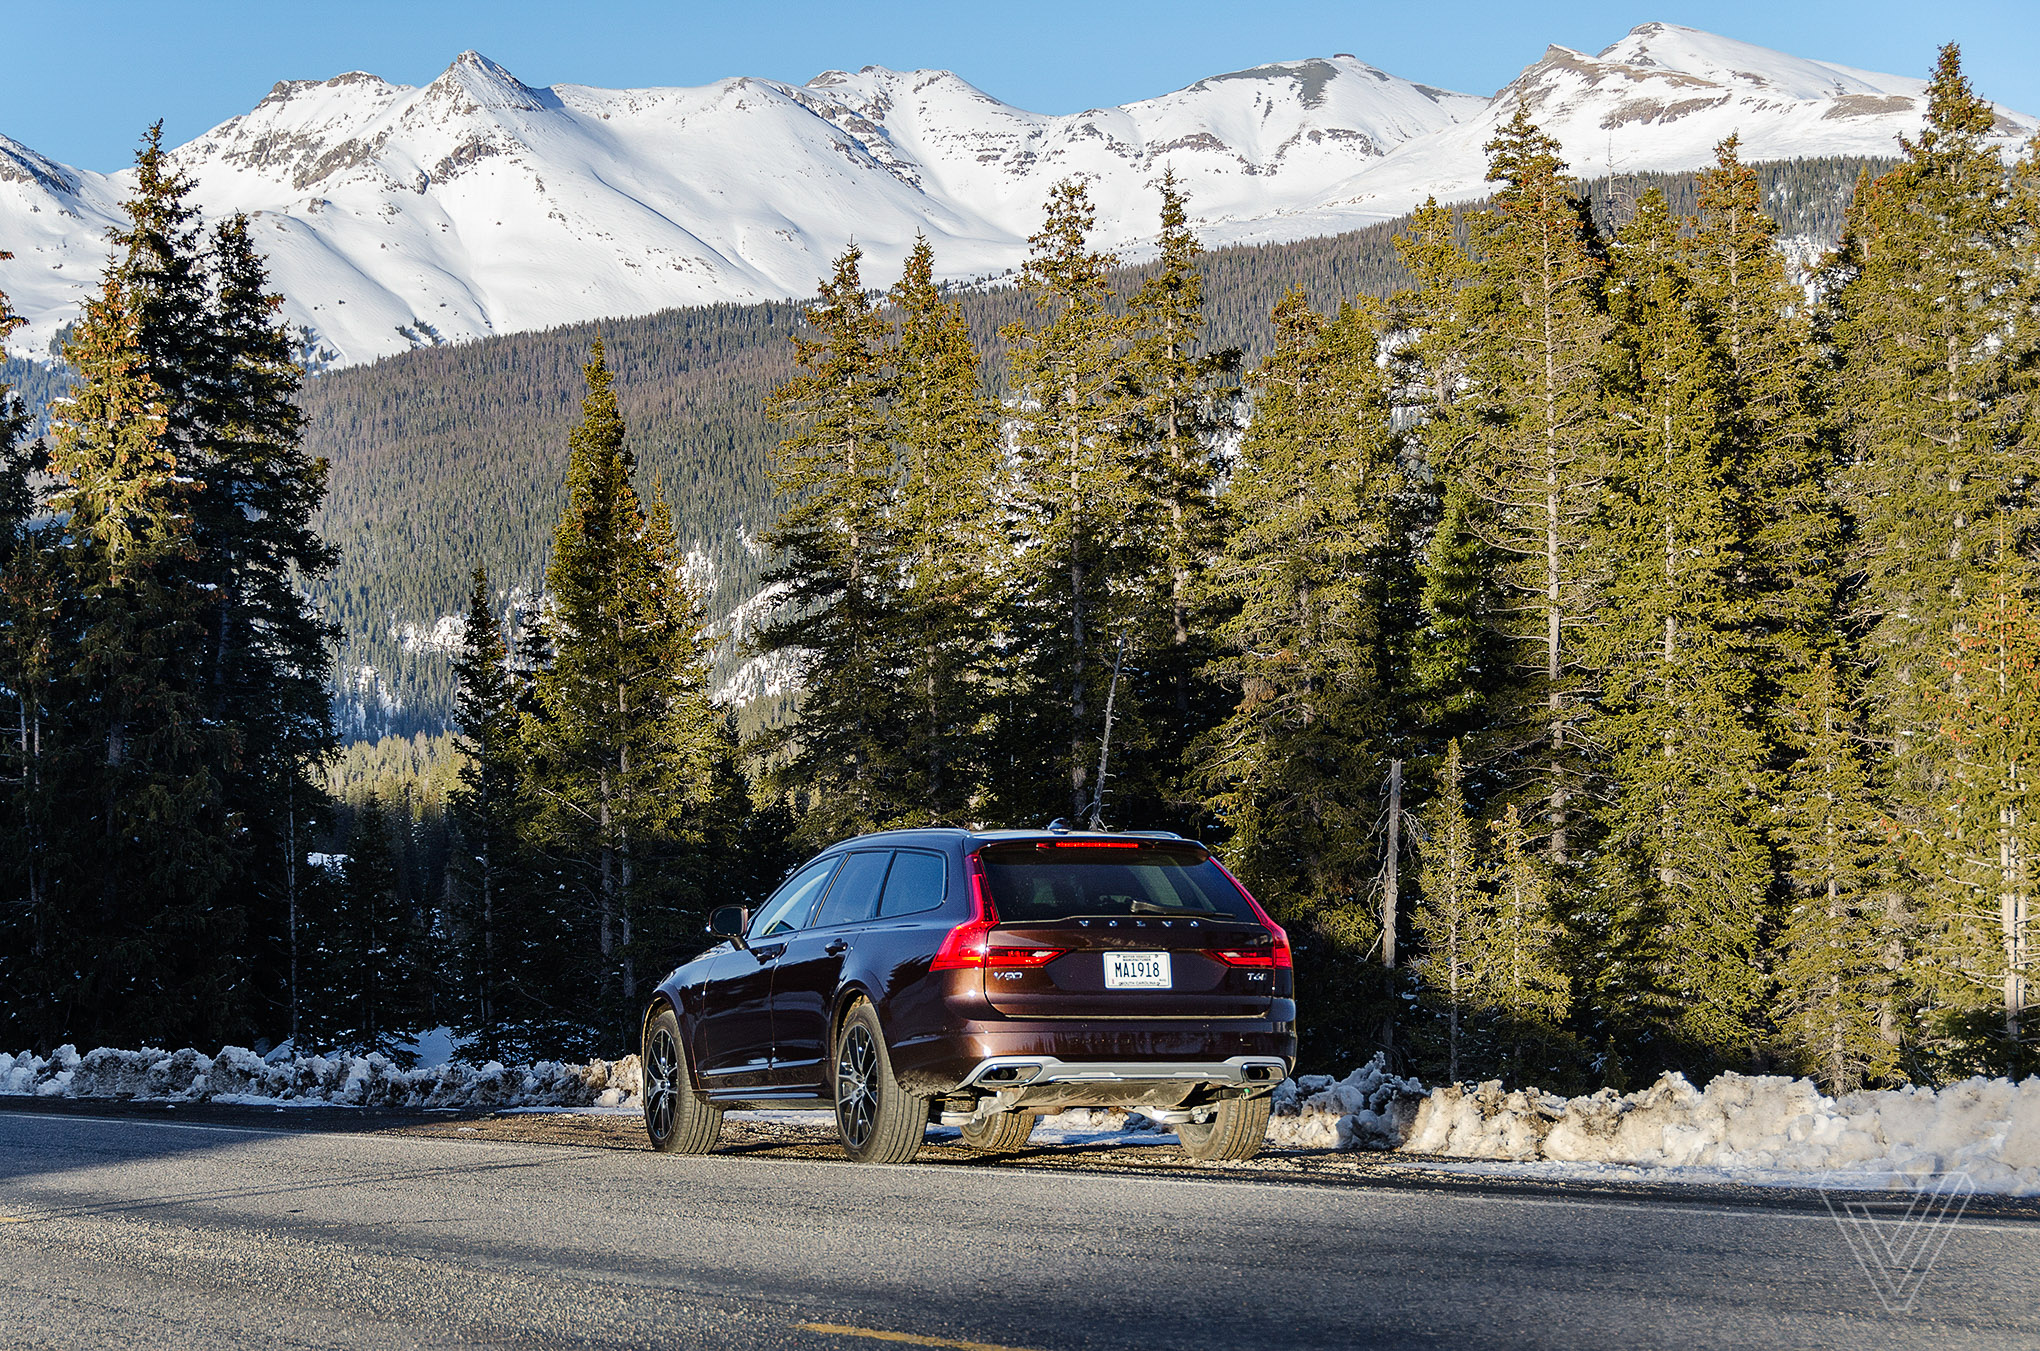 Coal Bank And Molas Are Steep Mountain Passes, With Stunning Views Of Snowy  Mountains And Canyons, And Grades As Much As 8 Percent. Most Cars Struggle  To ...